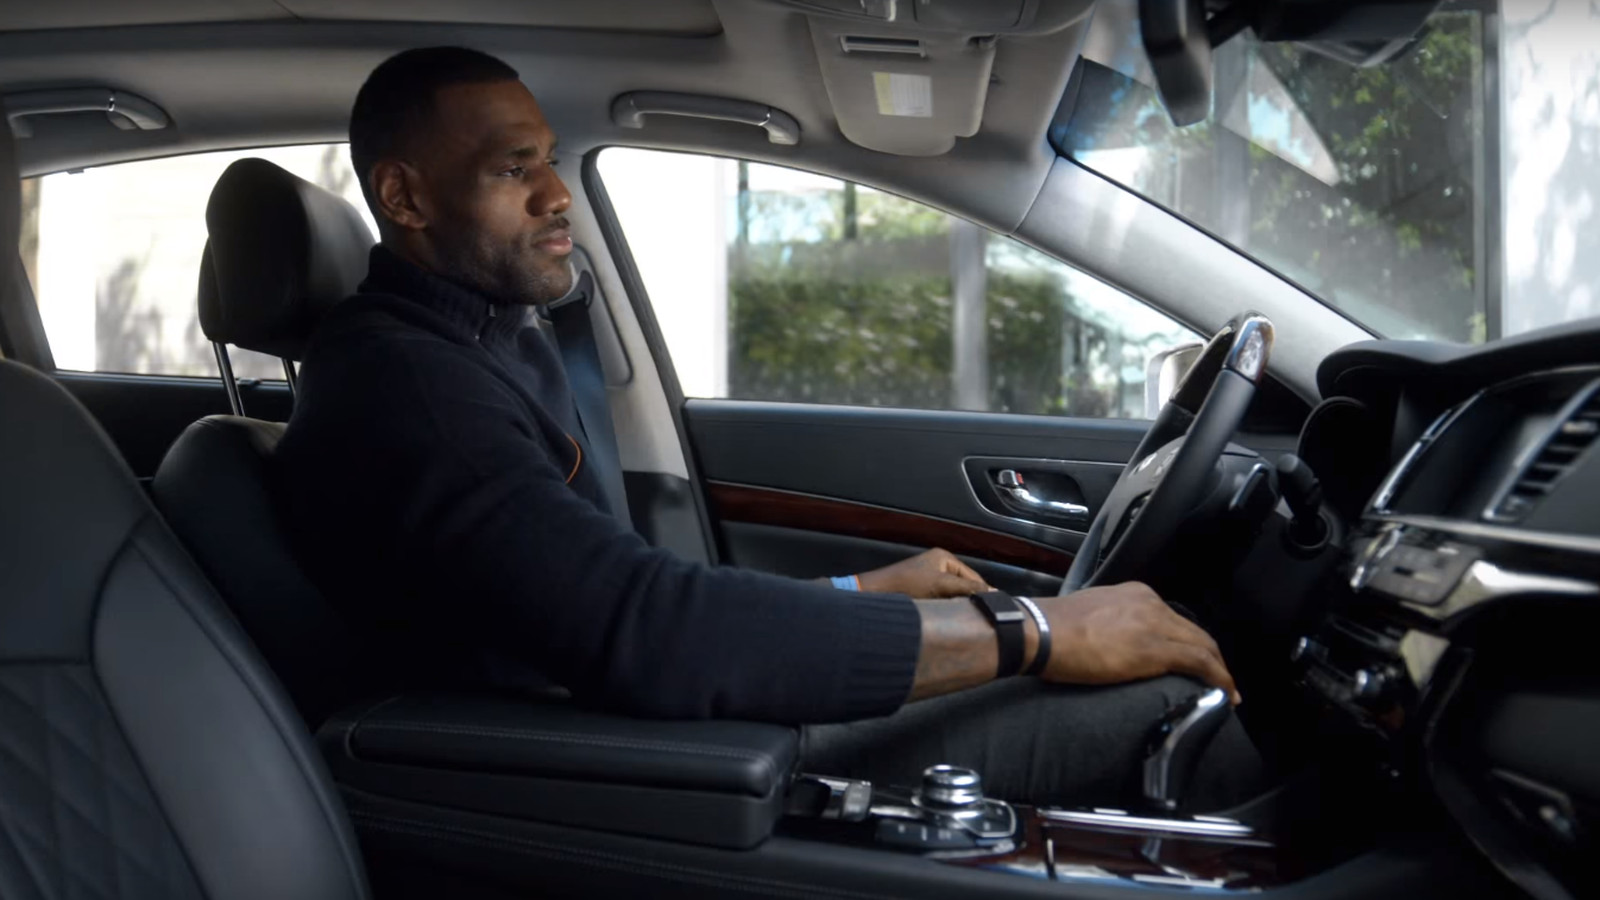 Lebron James Swears He Really Drives A Kia The Verge